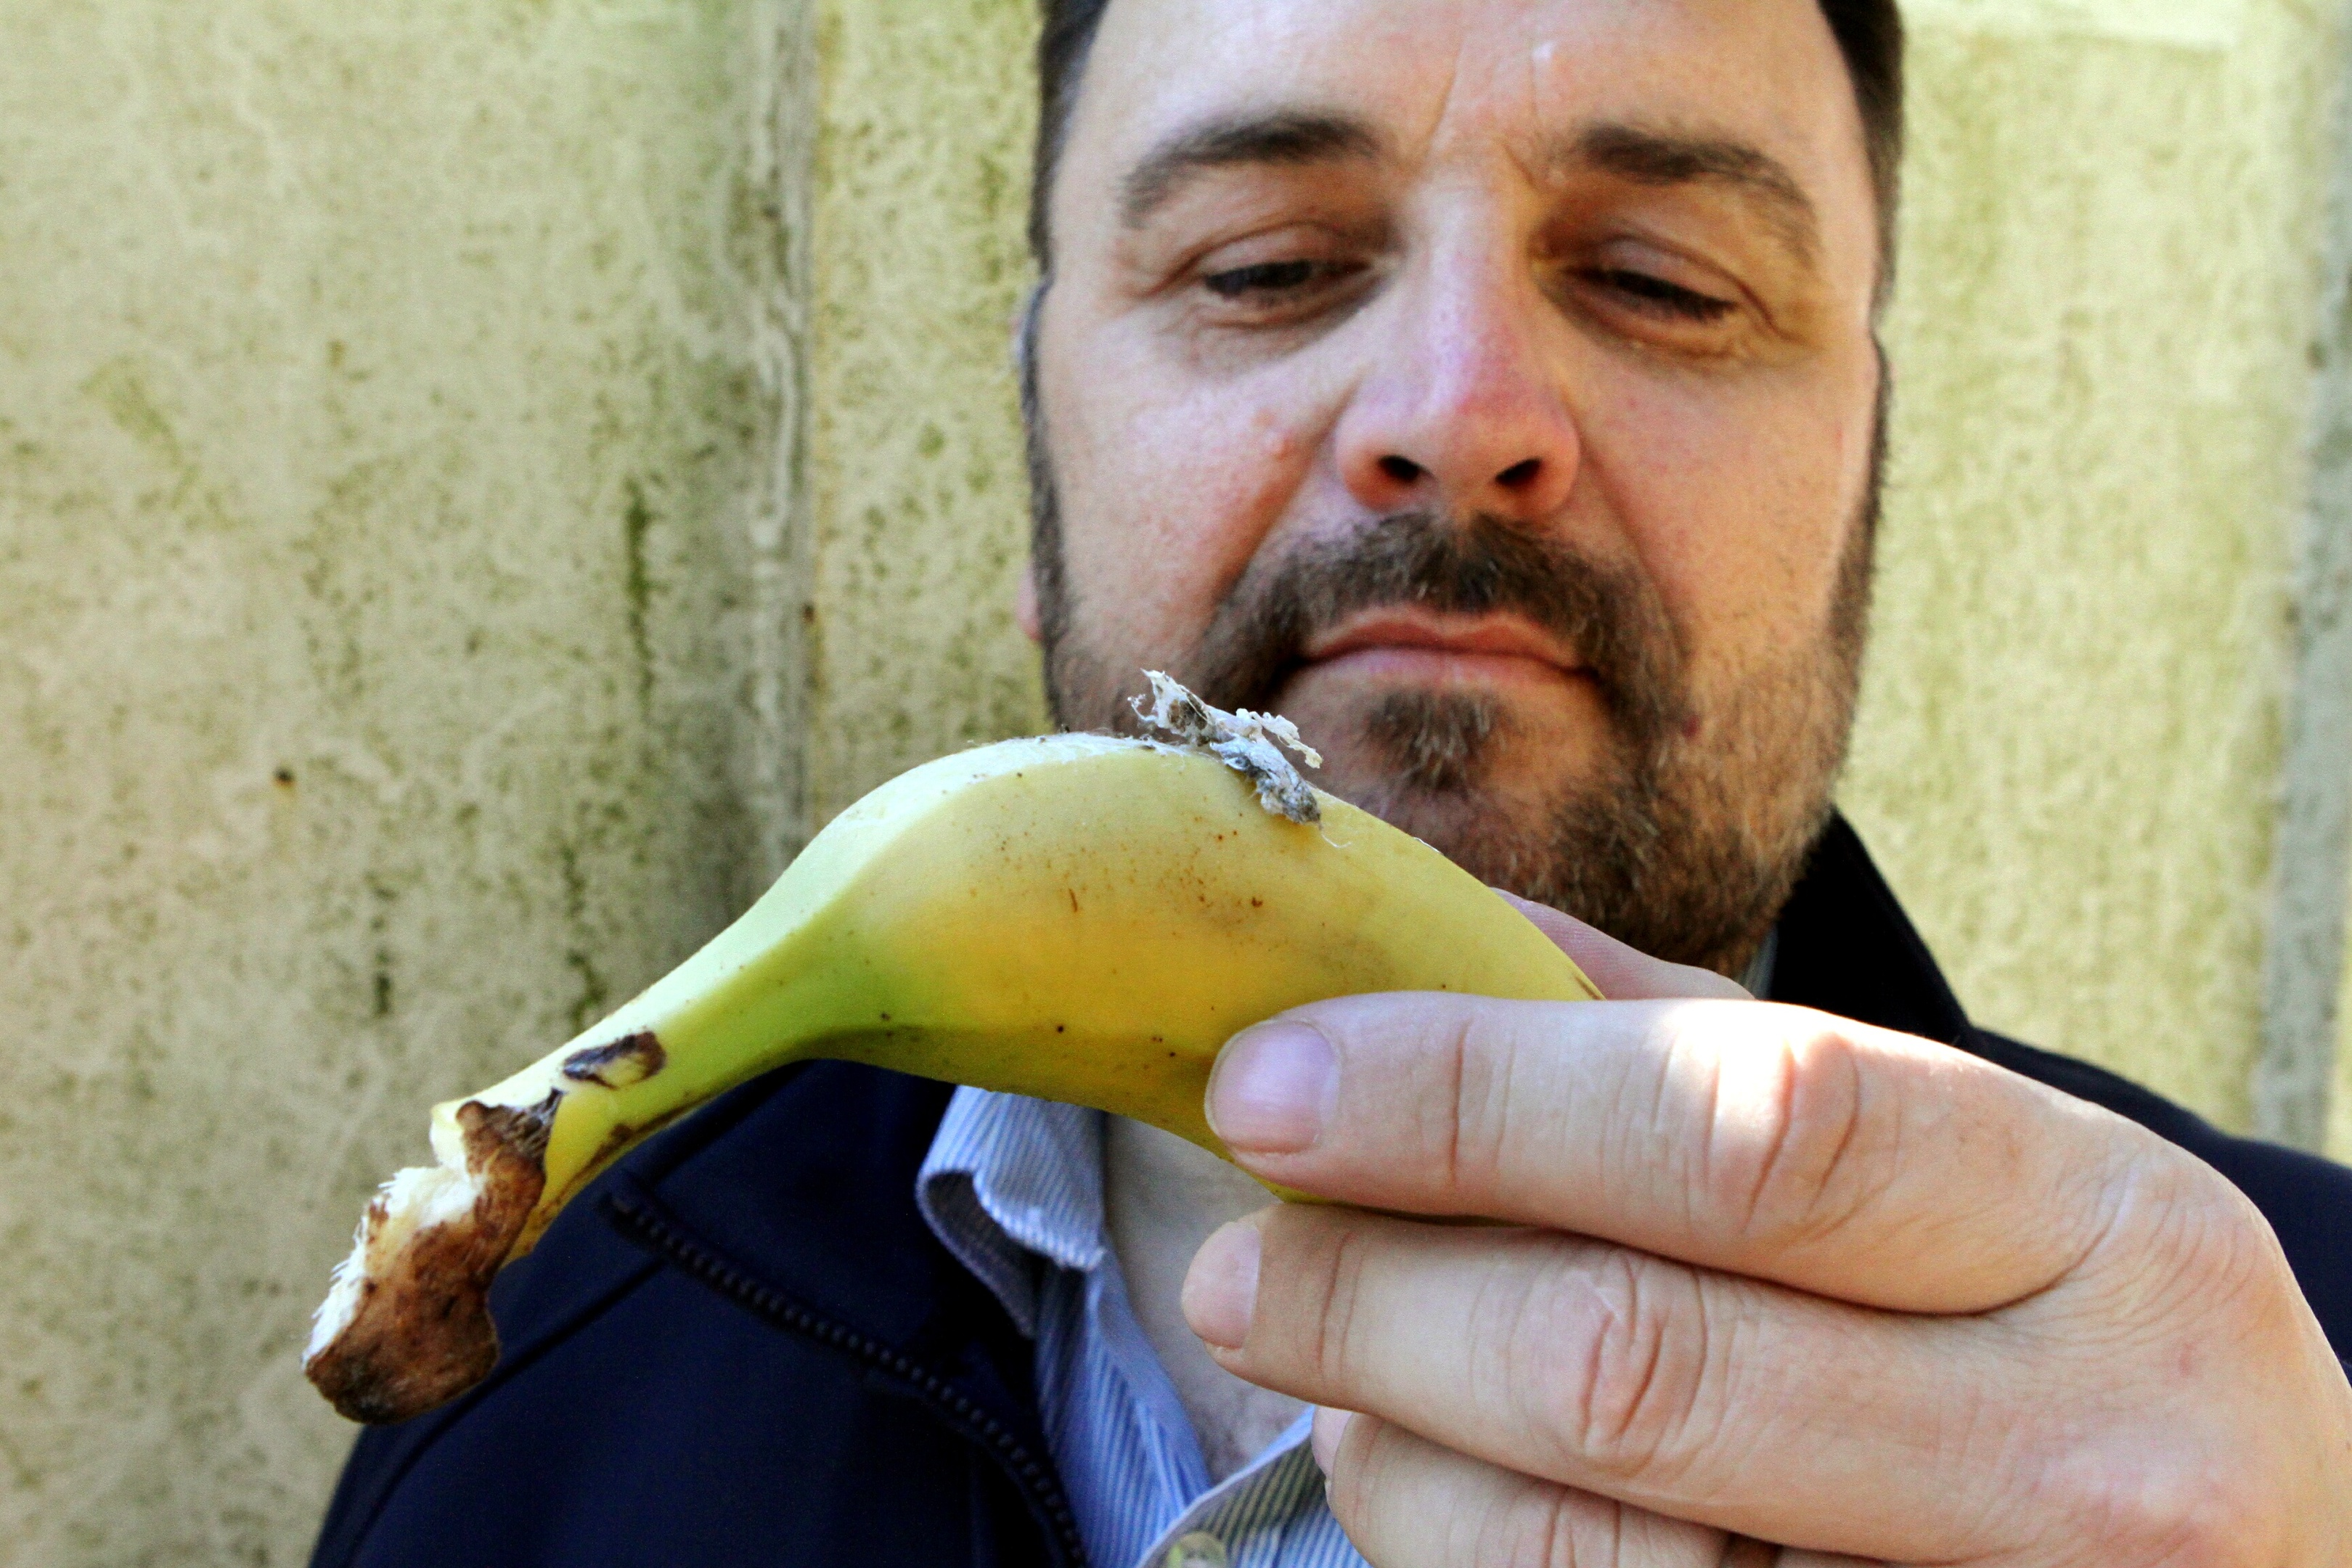 Bradly Yule of Camperdown Wildlife Centre examines the banana found with the spider eggs.